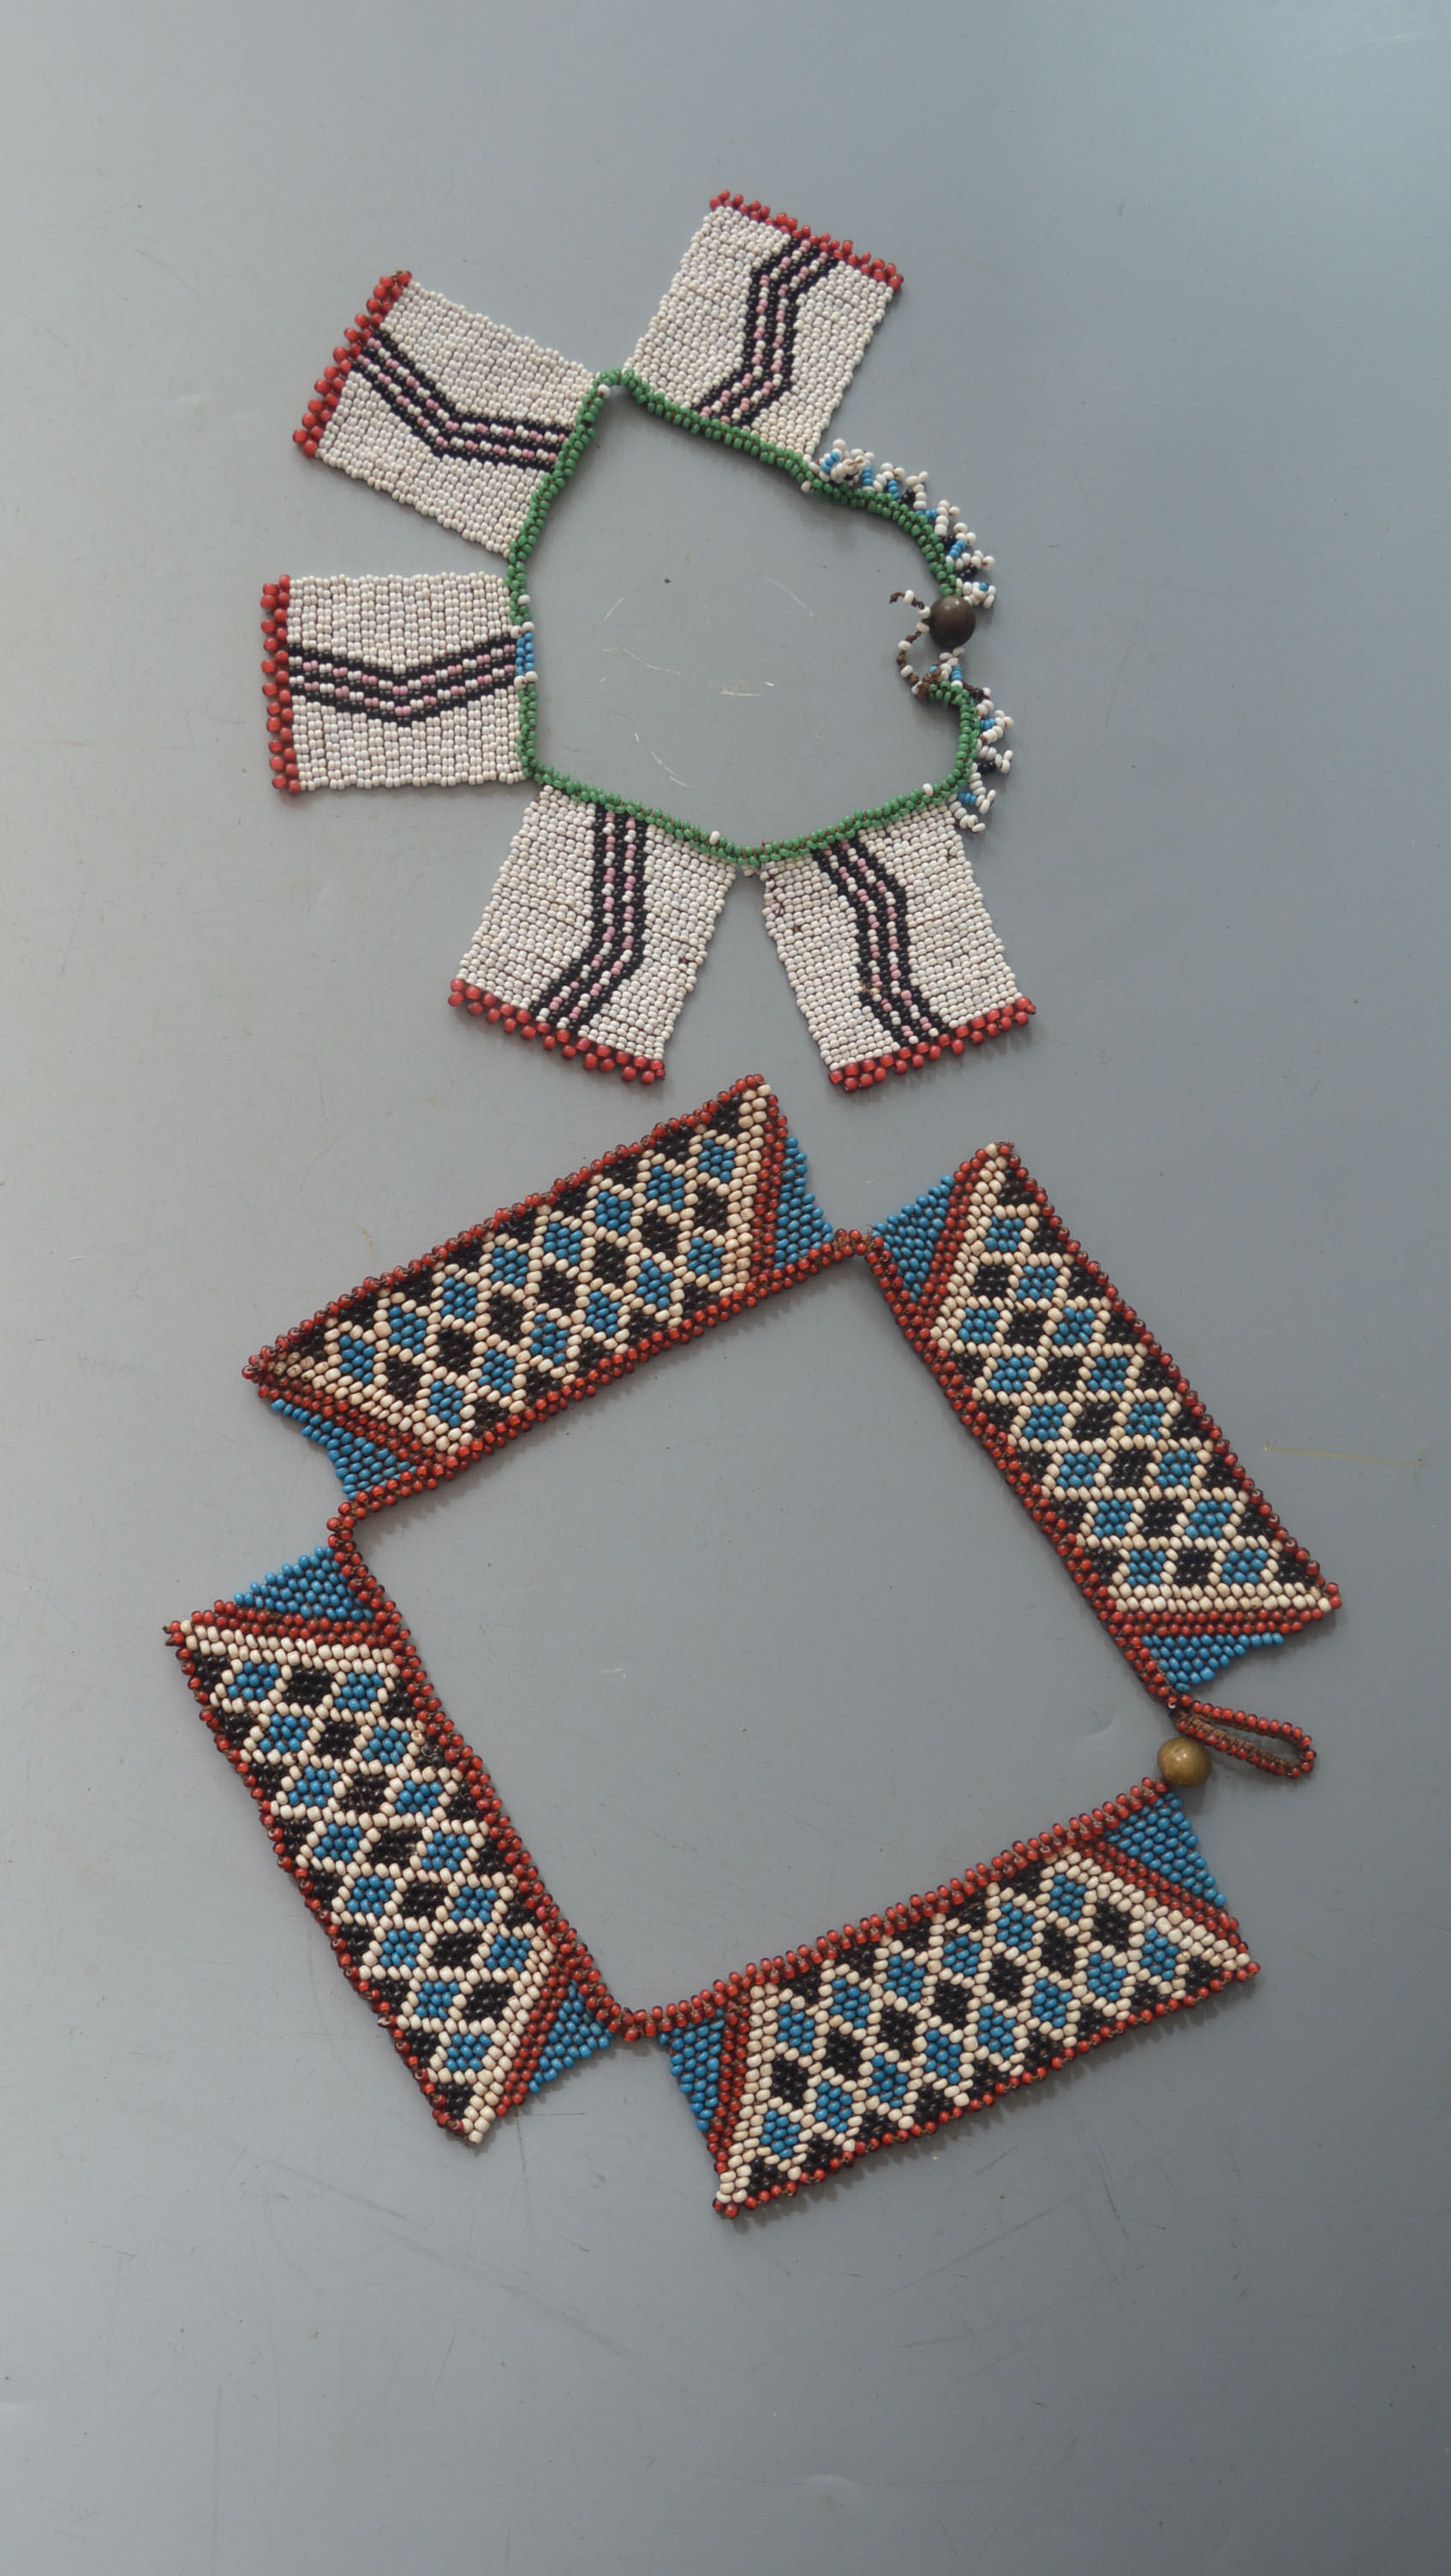 Two Zulu Bead Work Necklaces